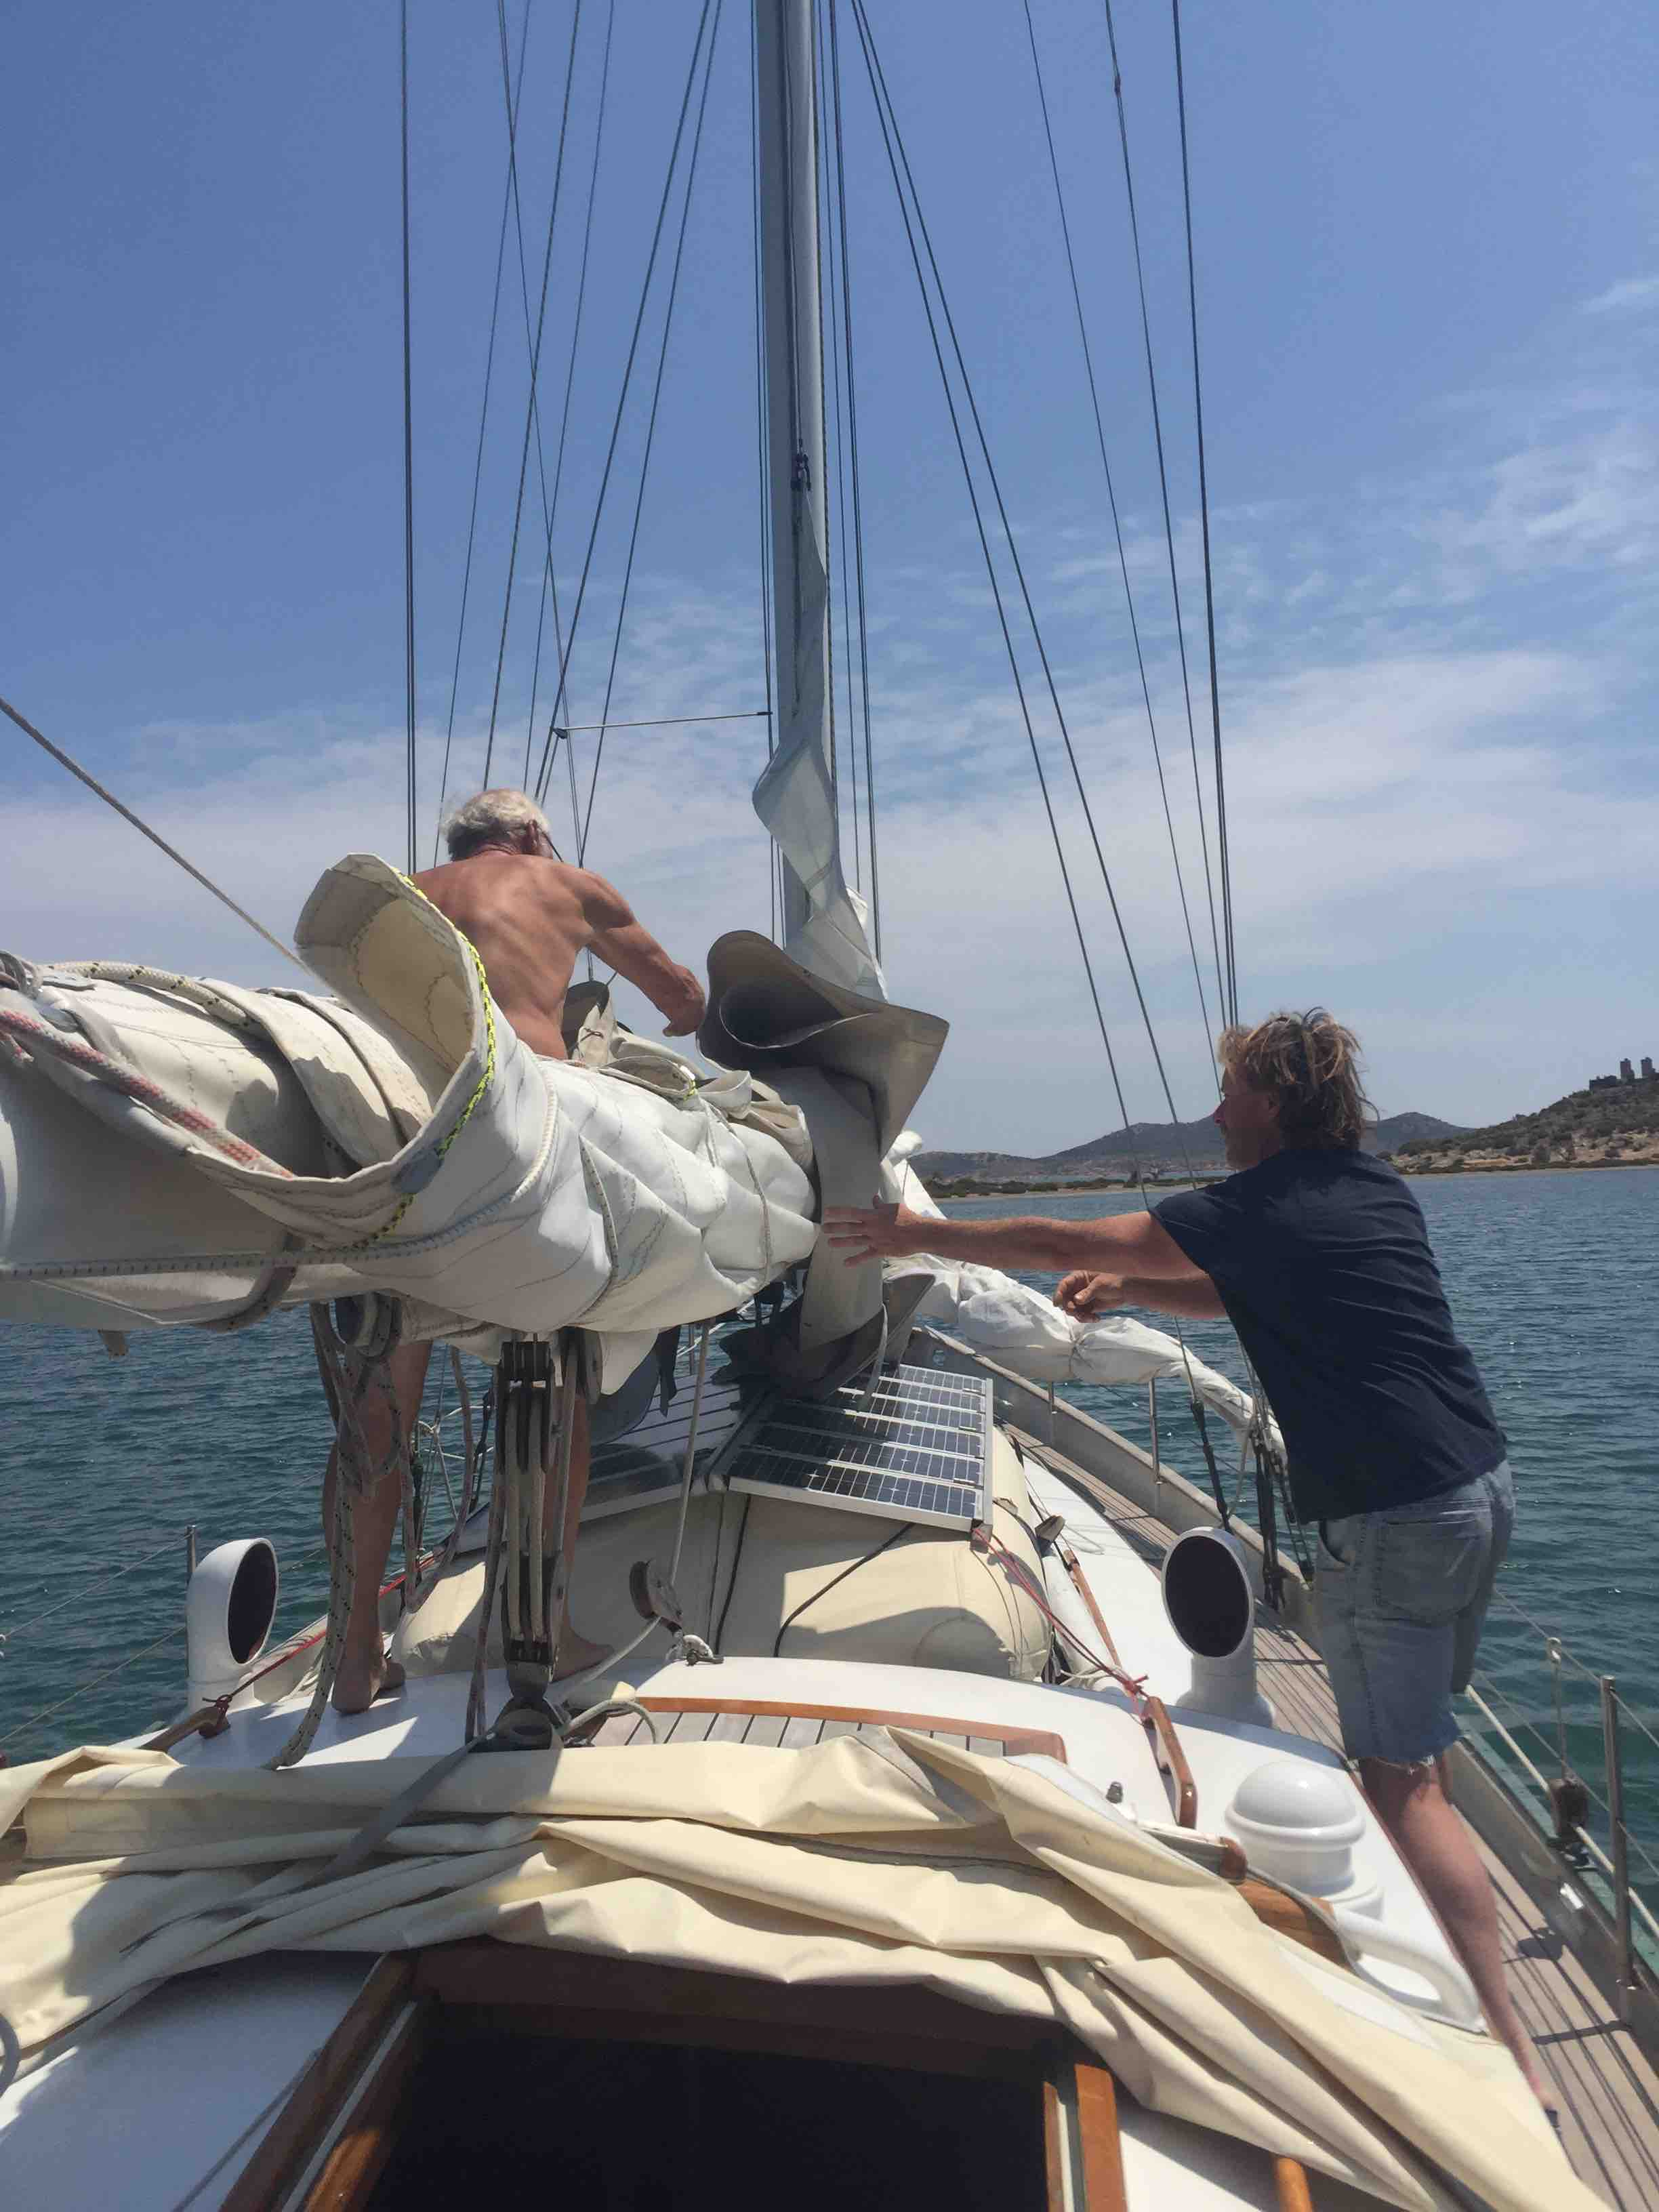 Working the sails